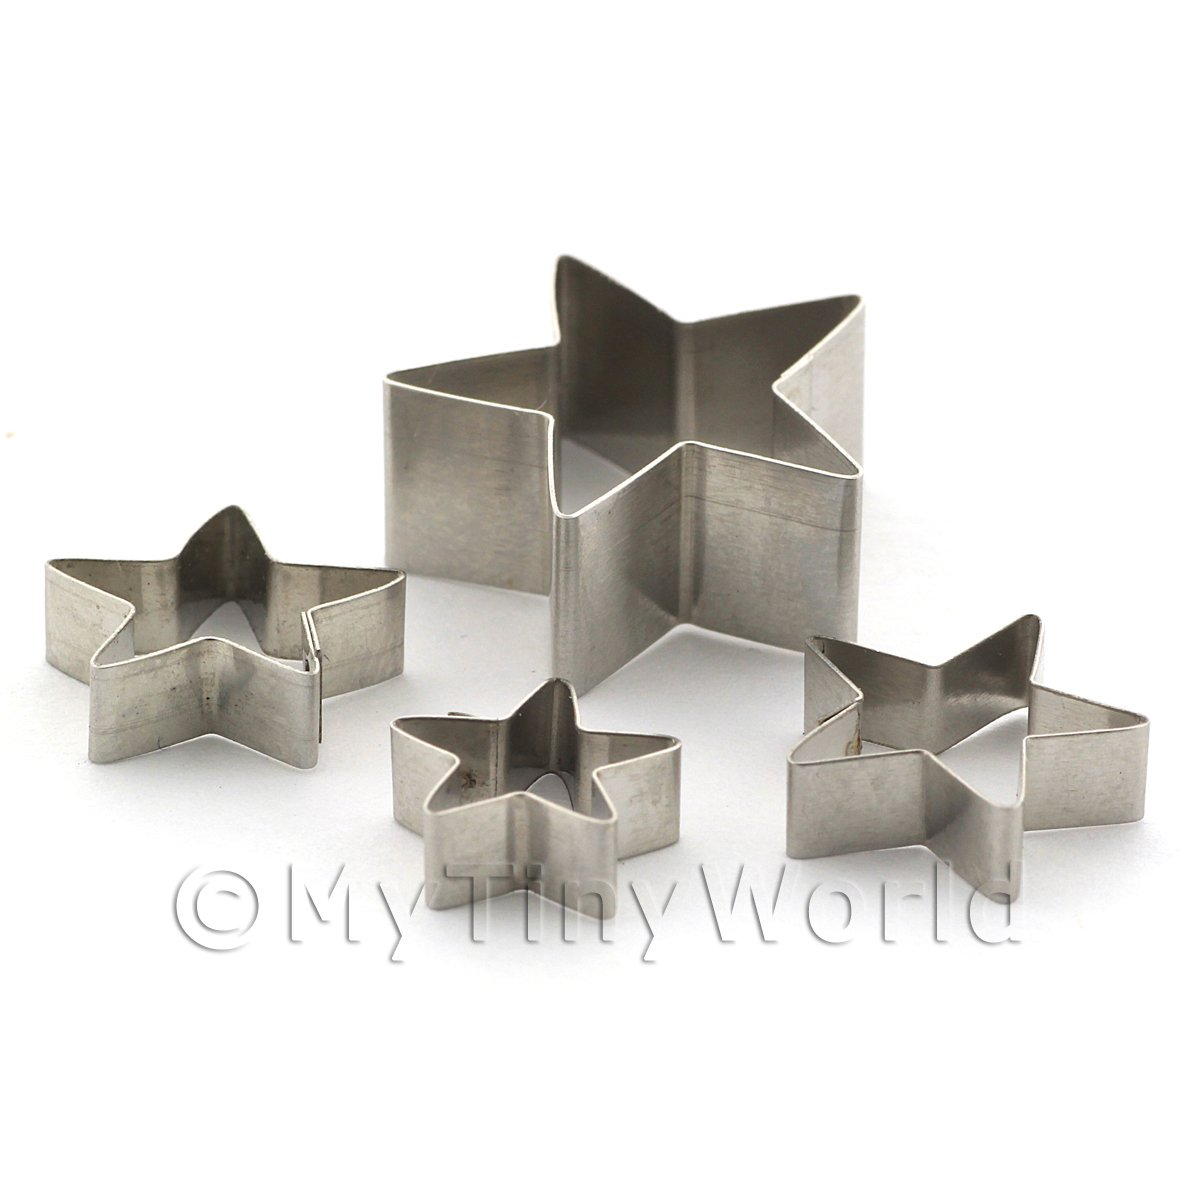 Set of 4 Different Sized Star Shaped Sugarcraft / Clay Cutters